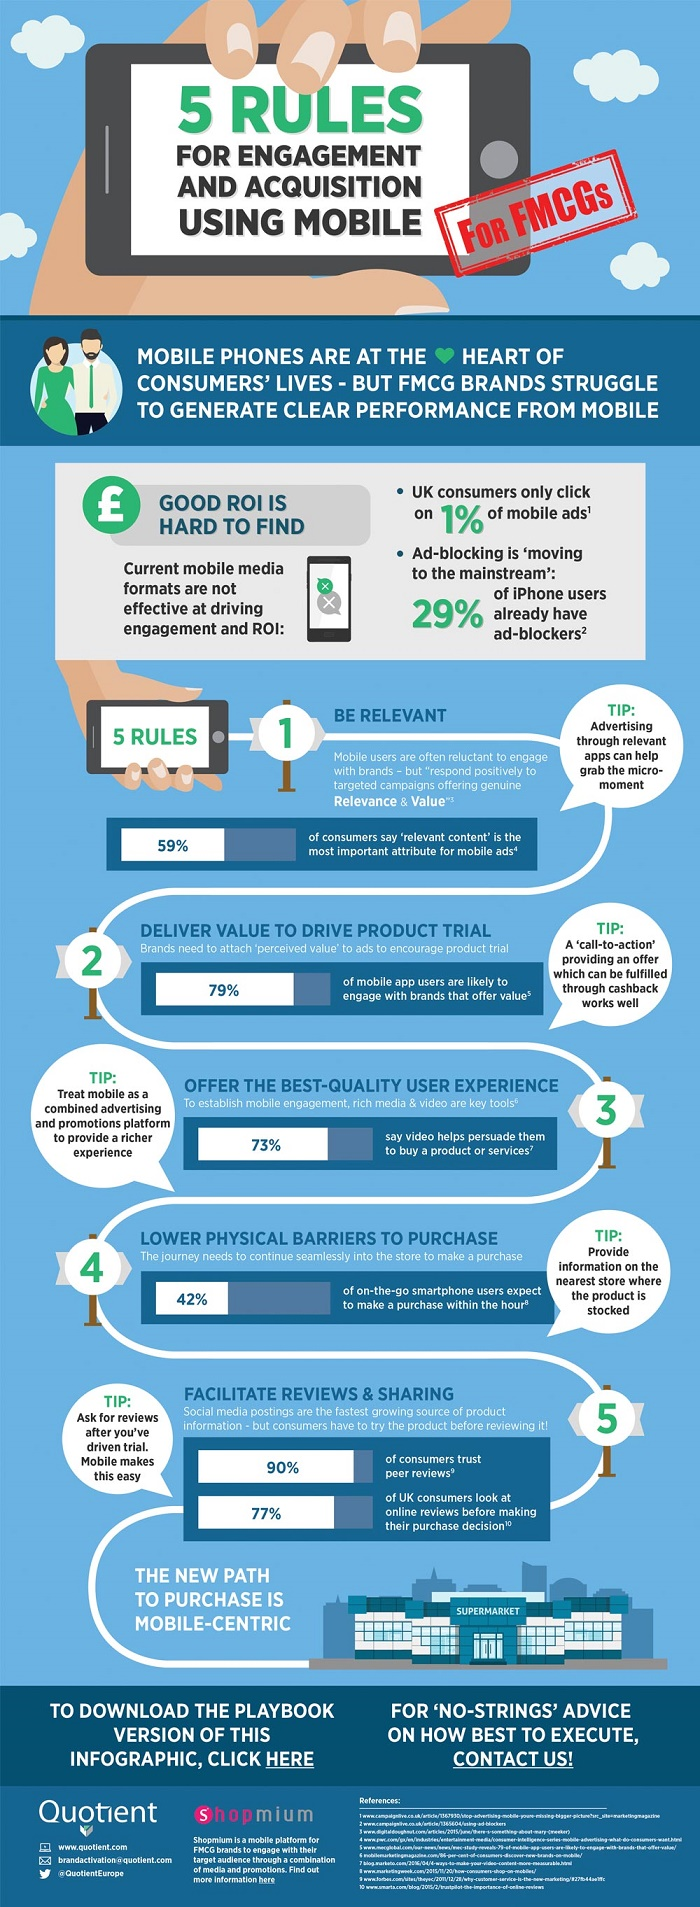 Quotient-Infographic-Mobile-To-In-Store-(1).jpg